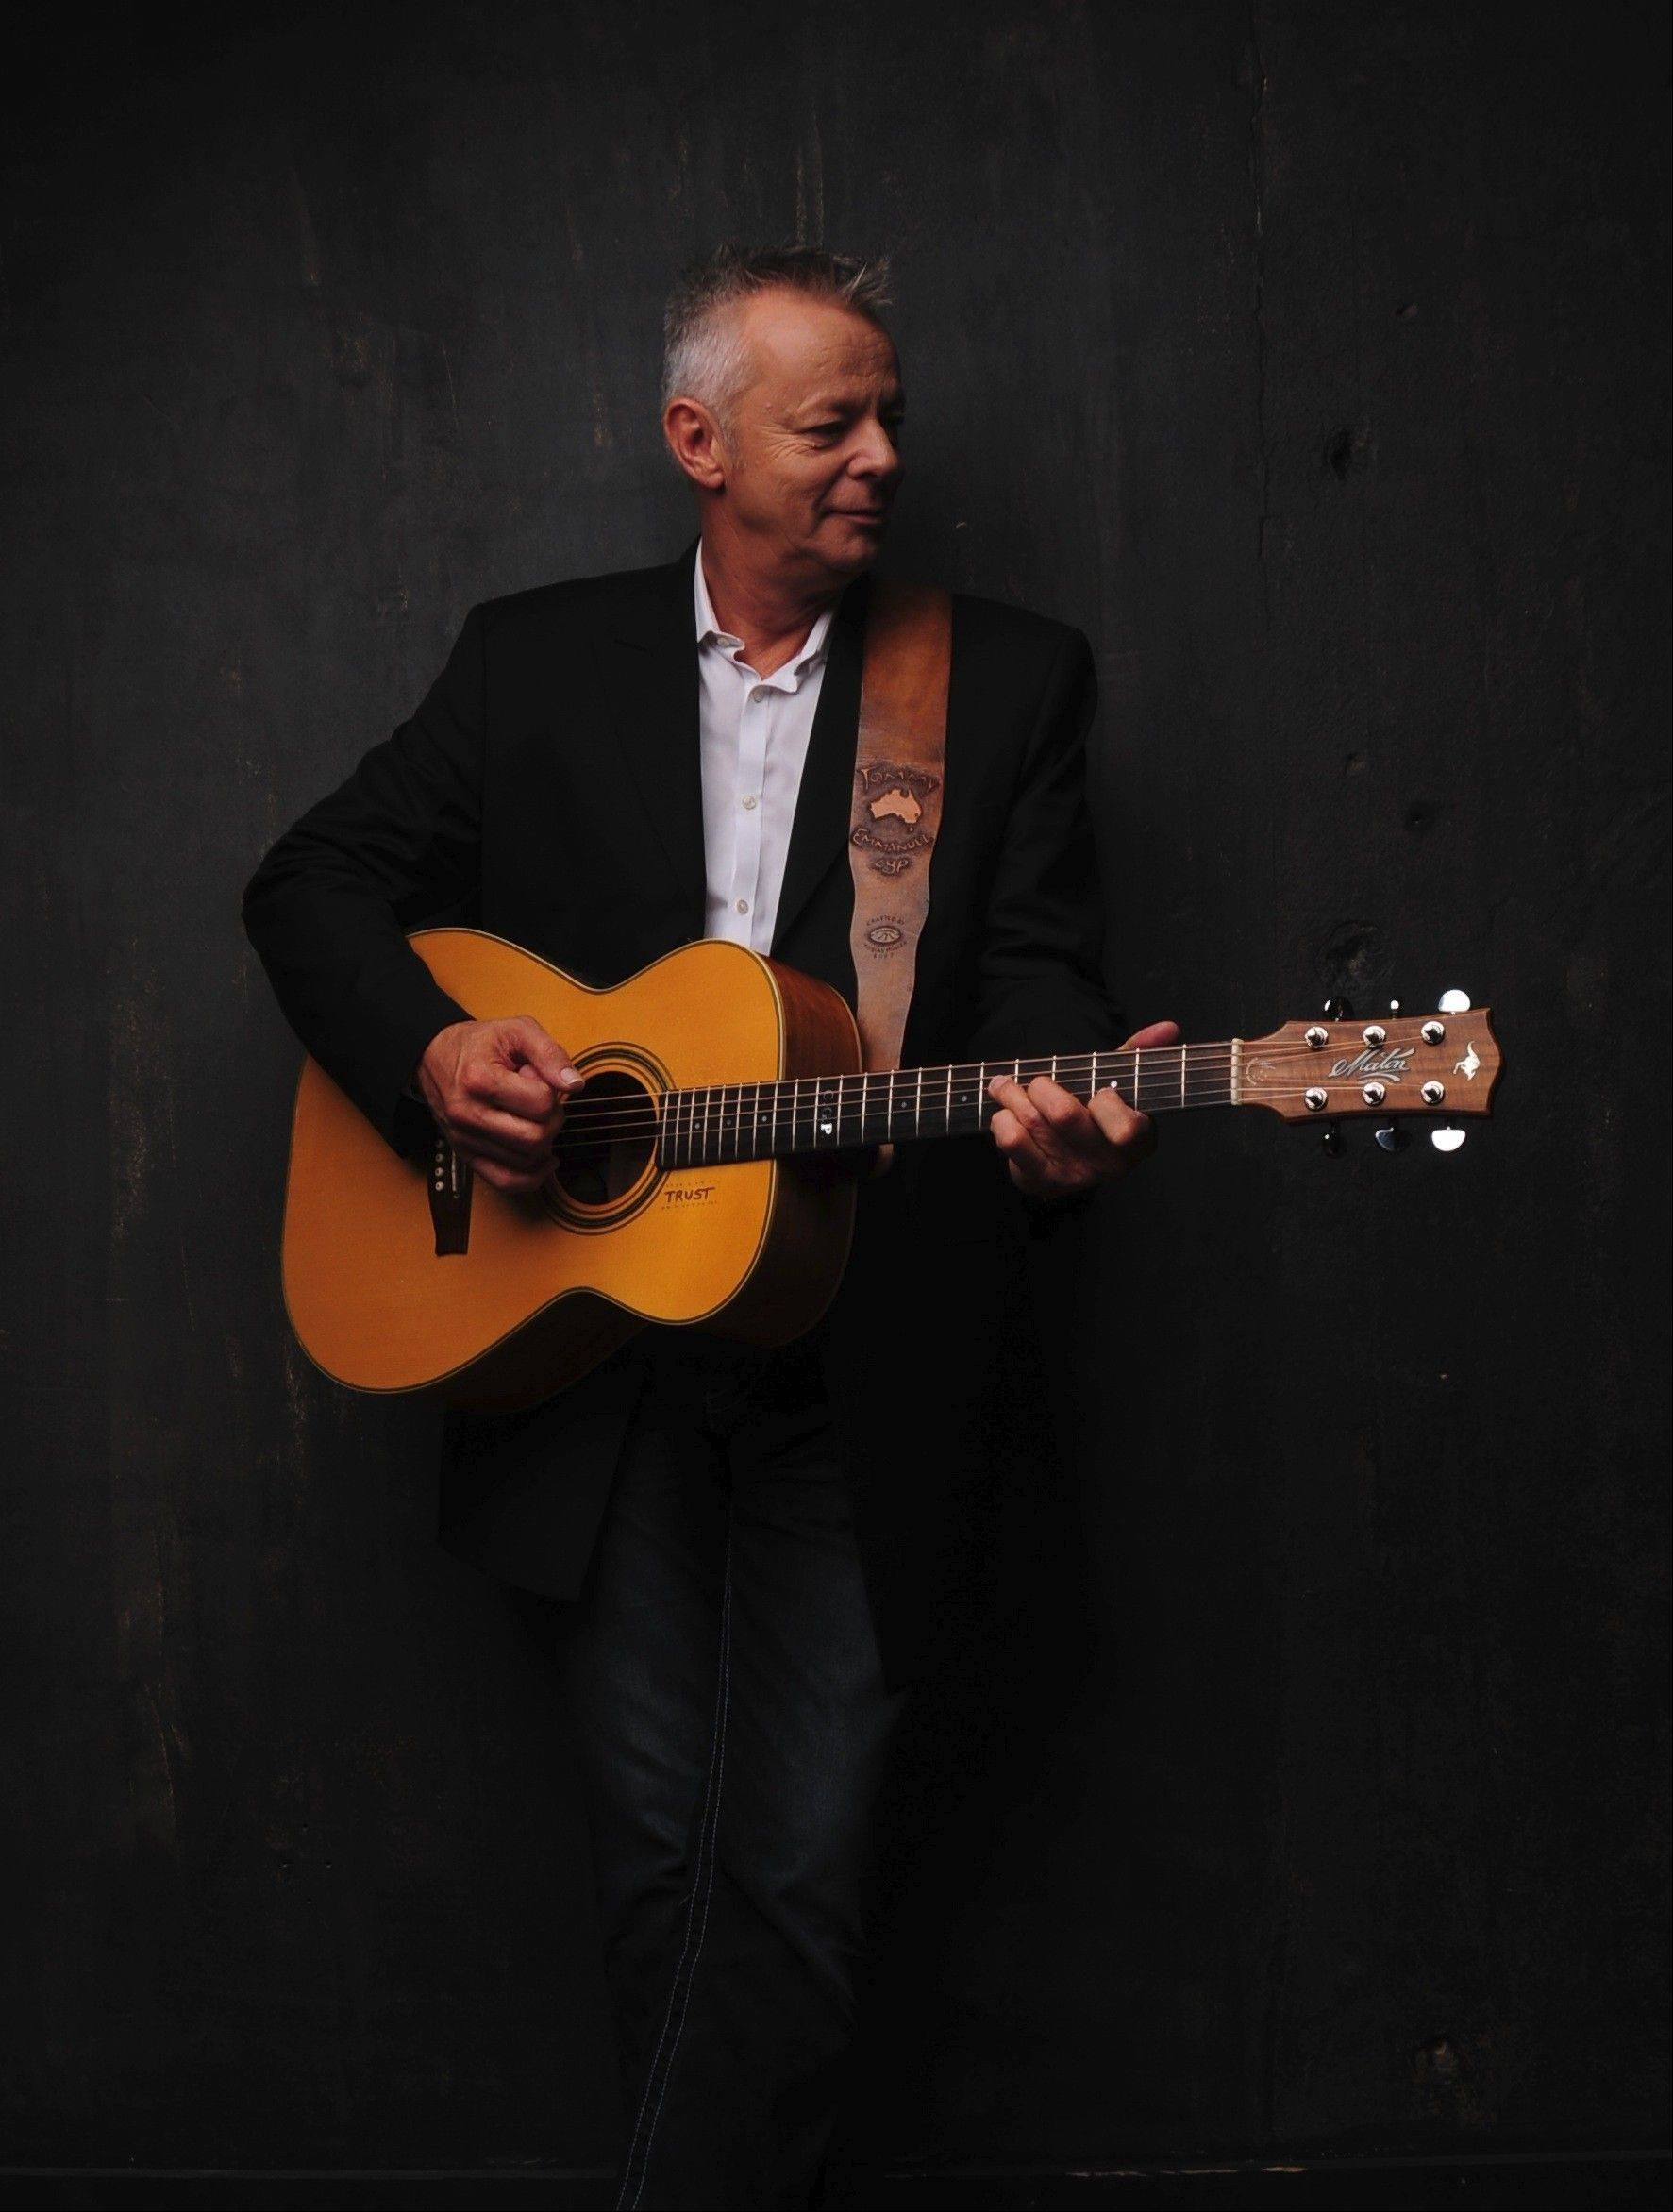 Guitar virtuoso Tommy Emmanuel performs at Elgin Community College Sept. 18. For tickets, visit tickets.elgin.edu.